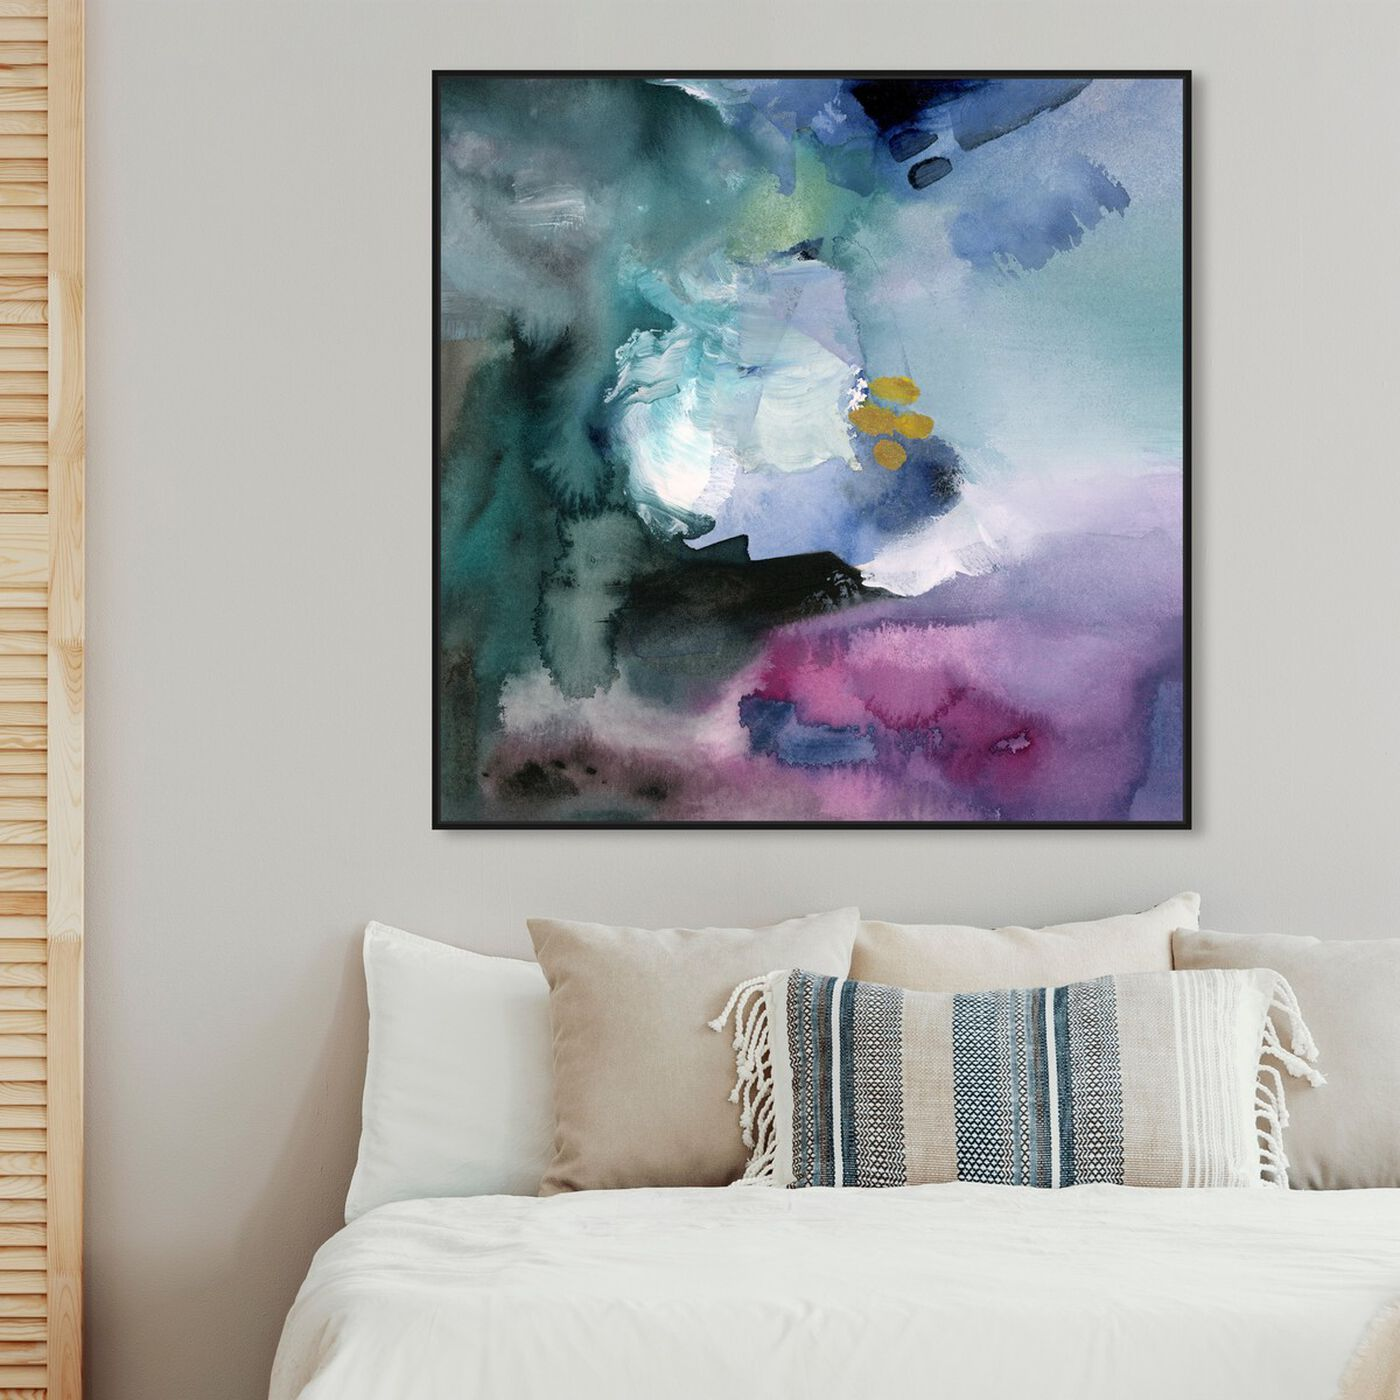 Hanging view of Nebulosa Abstract featuring abstract and watercolor art.